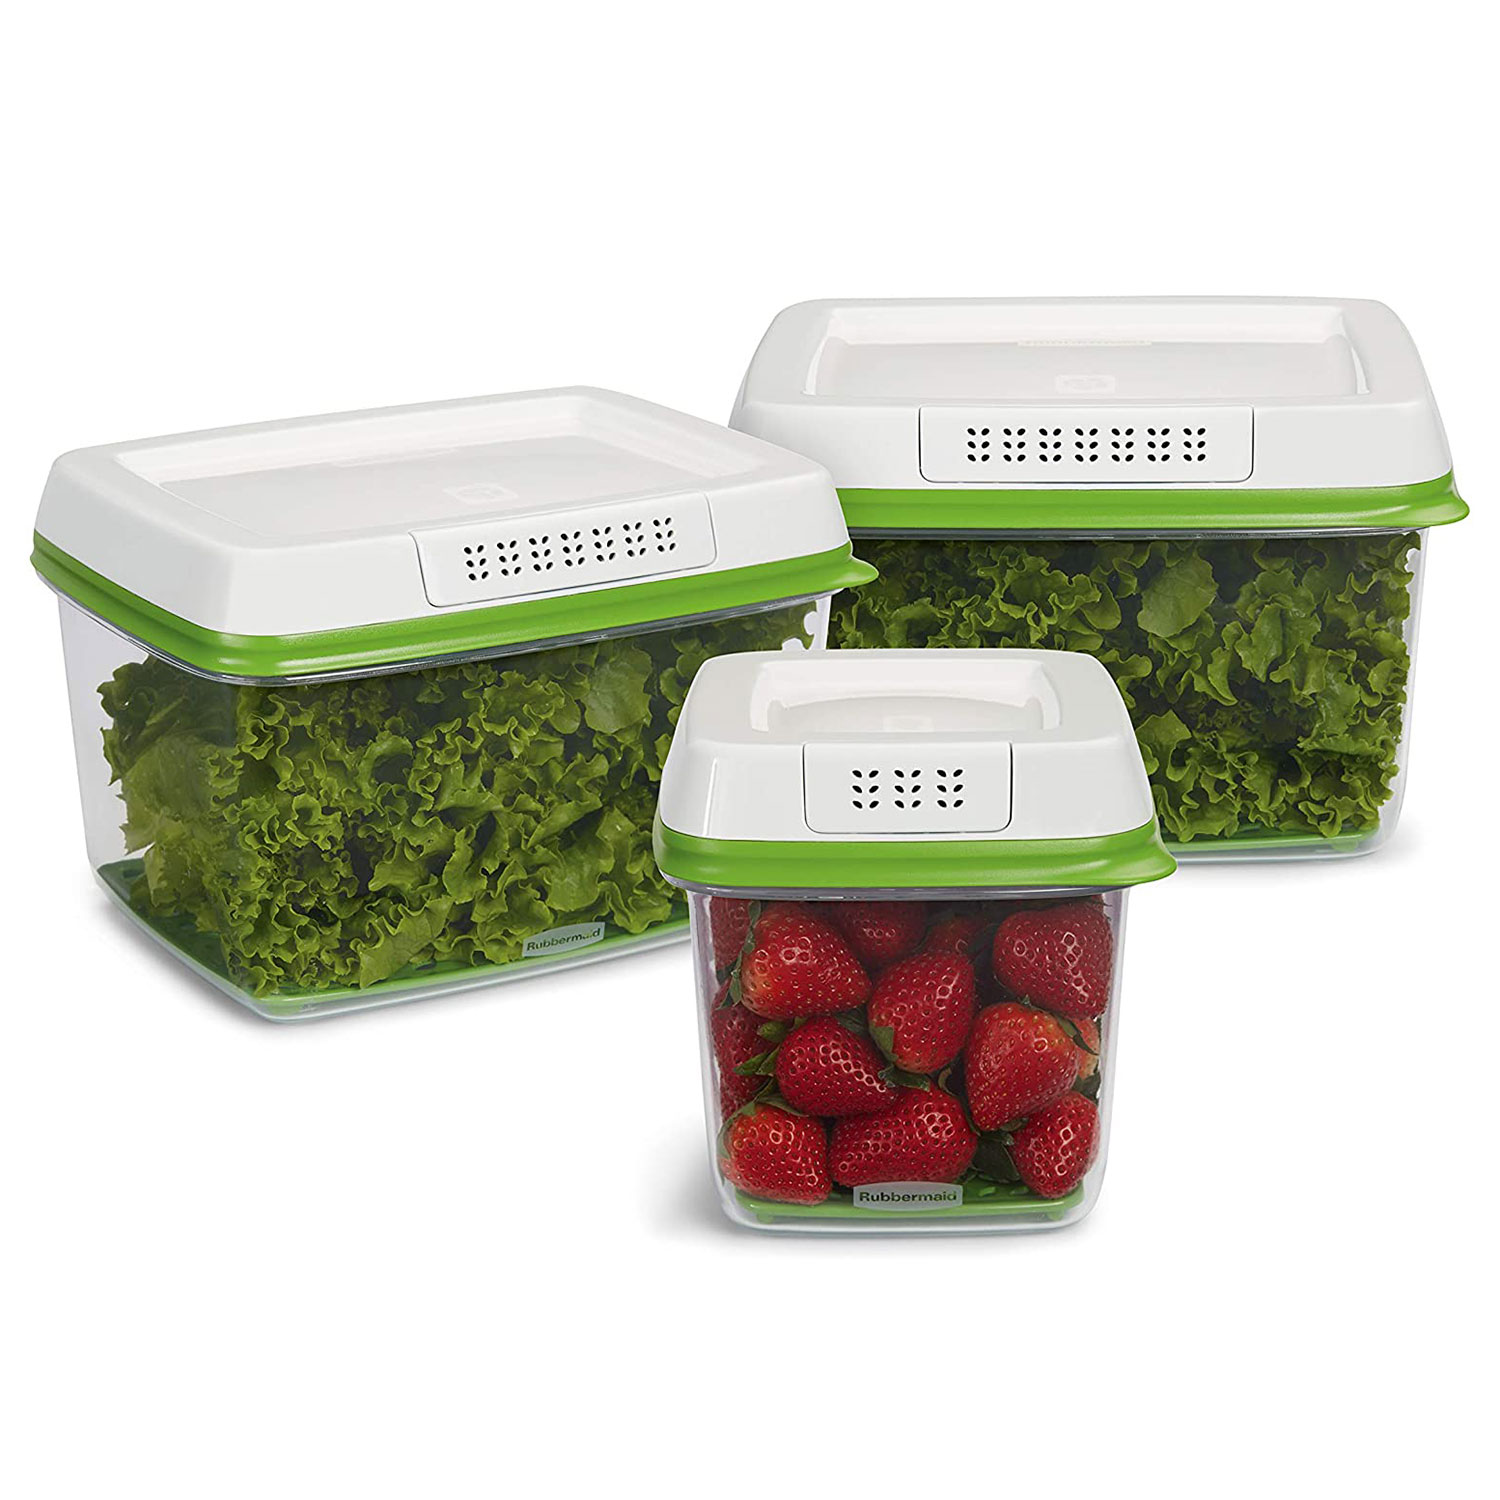 Rubbermaid - FreshWorks Produce Saver Food Storage Container